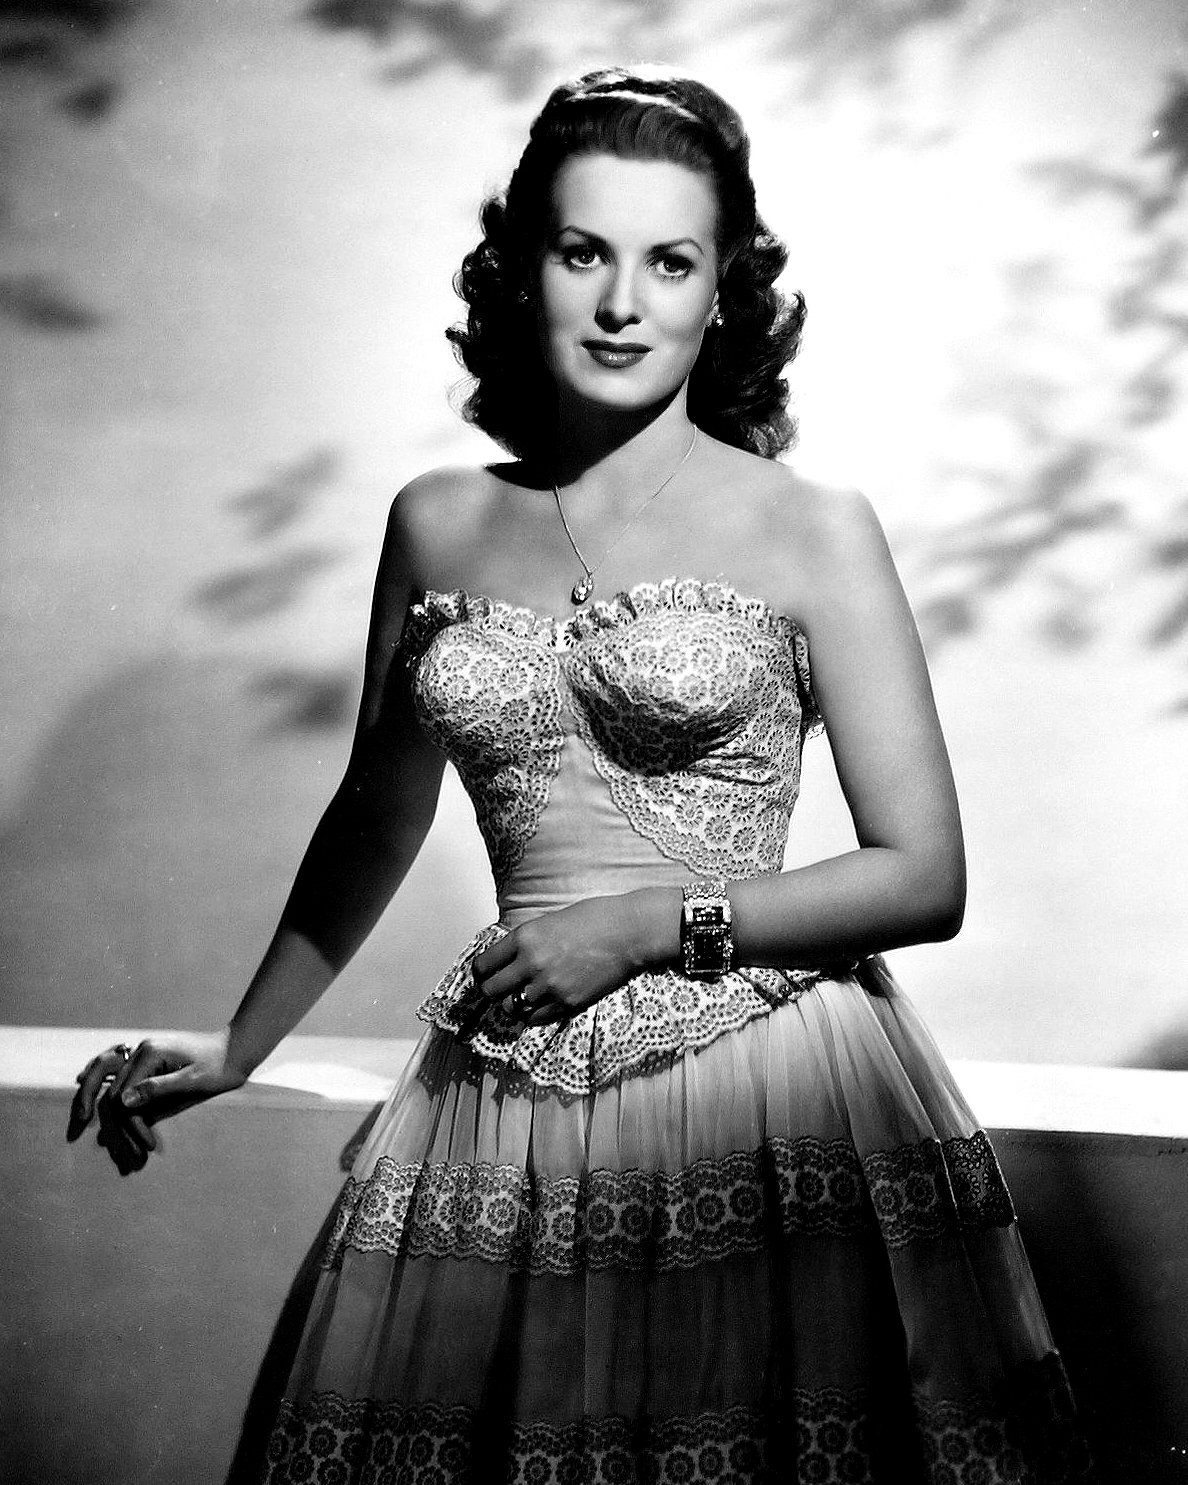 MAUREEN O'HARA LEGENDARY FILM ACTRESS - 8X10 RARE PUBLICITY PHOTO (ZY-053)